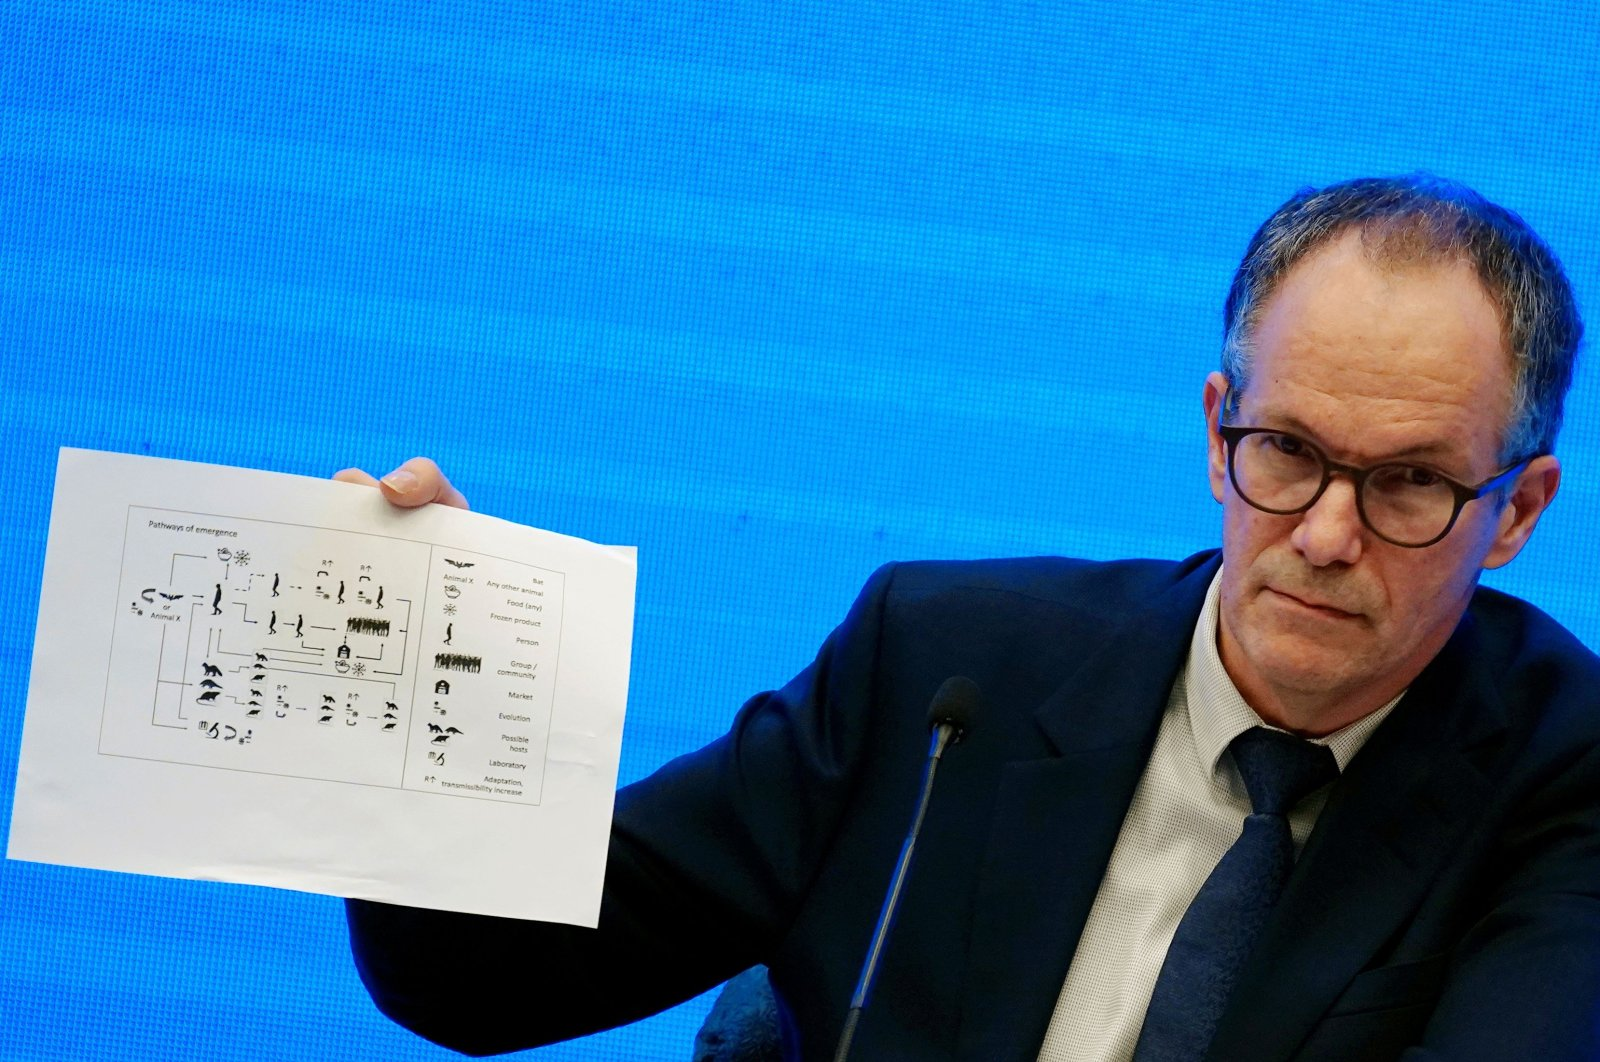 Peter Ben Embarek, a member of the World Health Organization (WHO) team tasked with investigating the origins of the coronavirus disease (COVID-19), holds a chart during the WHO-China joint study news conference at a hotel in Wuhan, Hubei province, China on Feb. 9, 2021. (Reuters Photo)